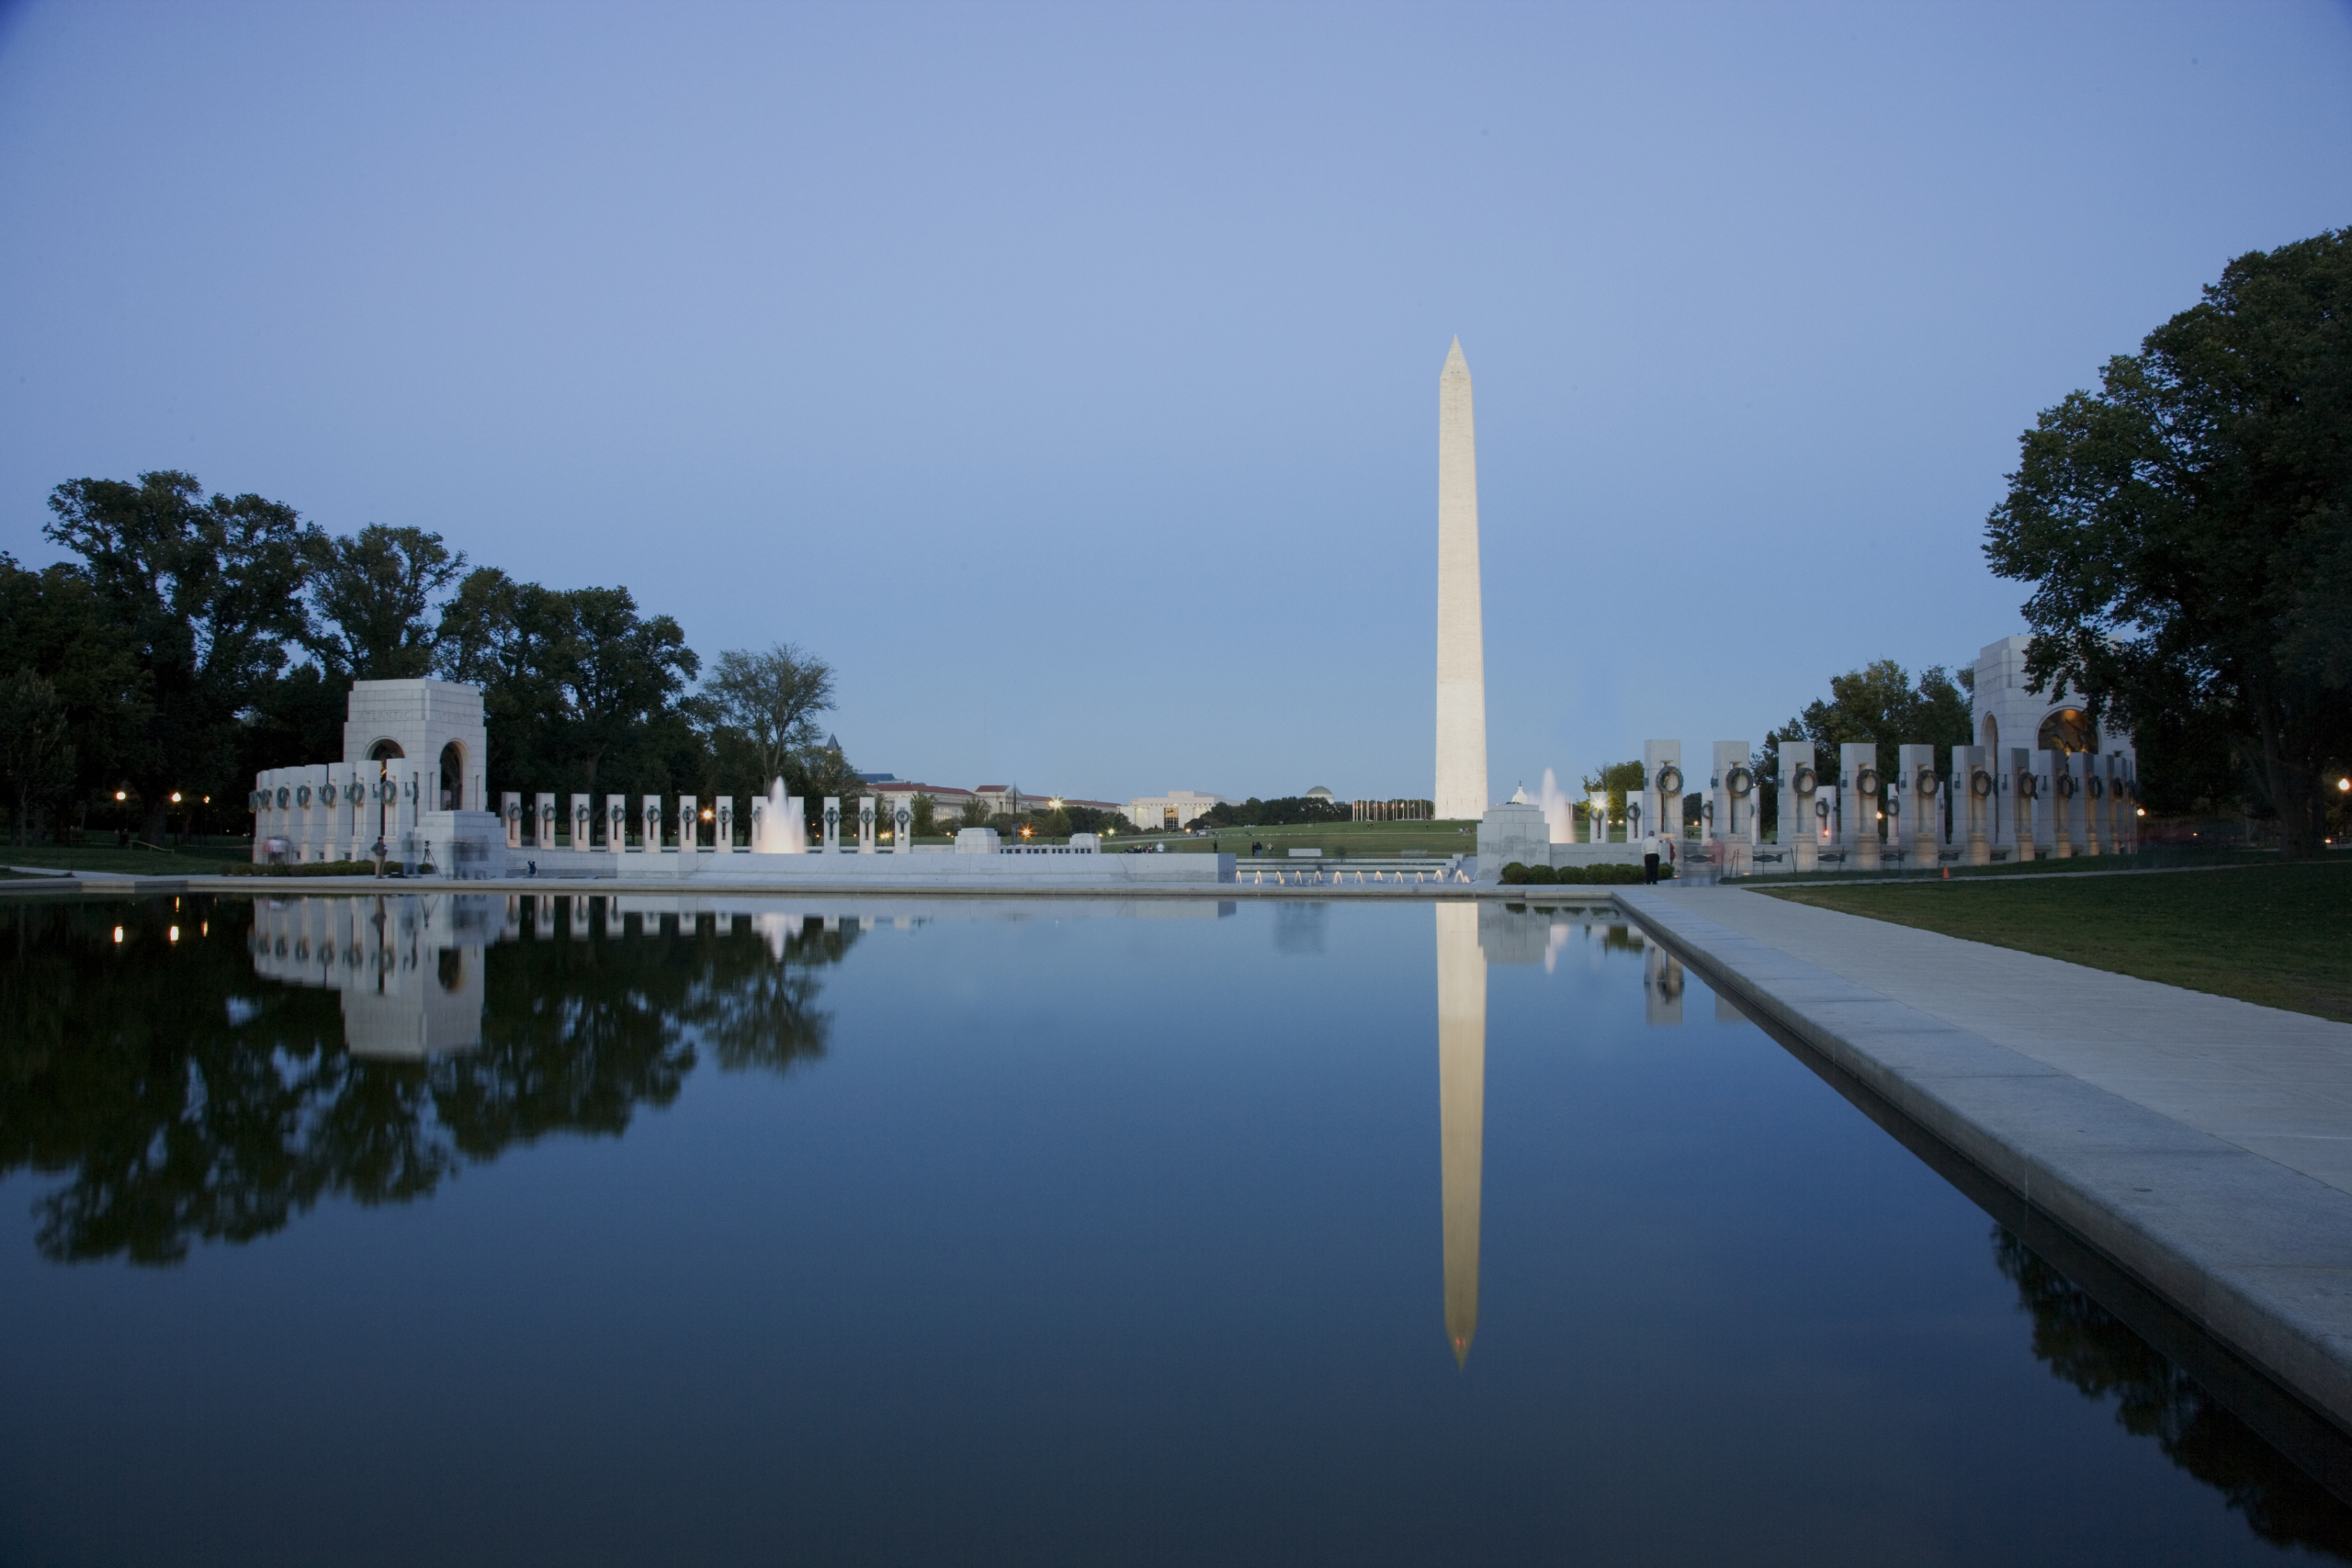 Reflecting Pool on the National Mall with the Washinton Monument.